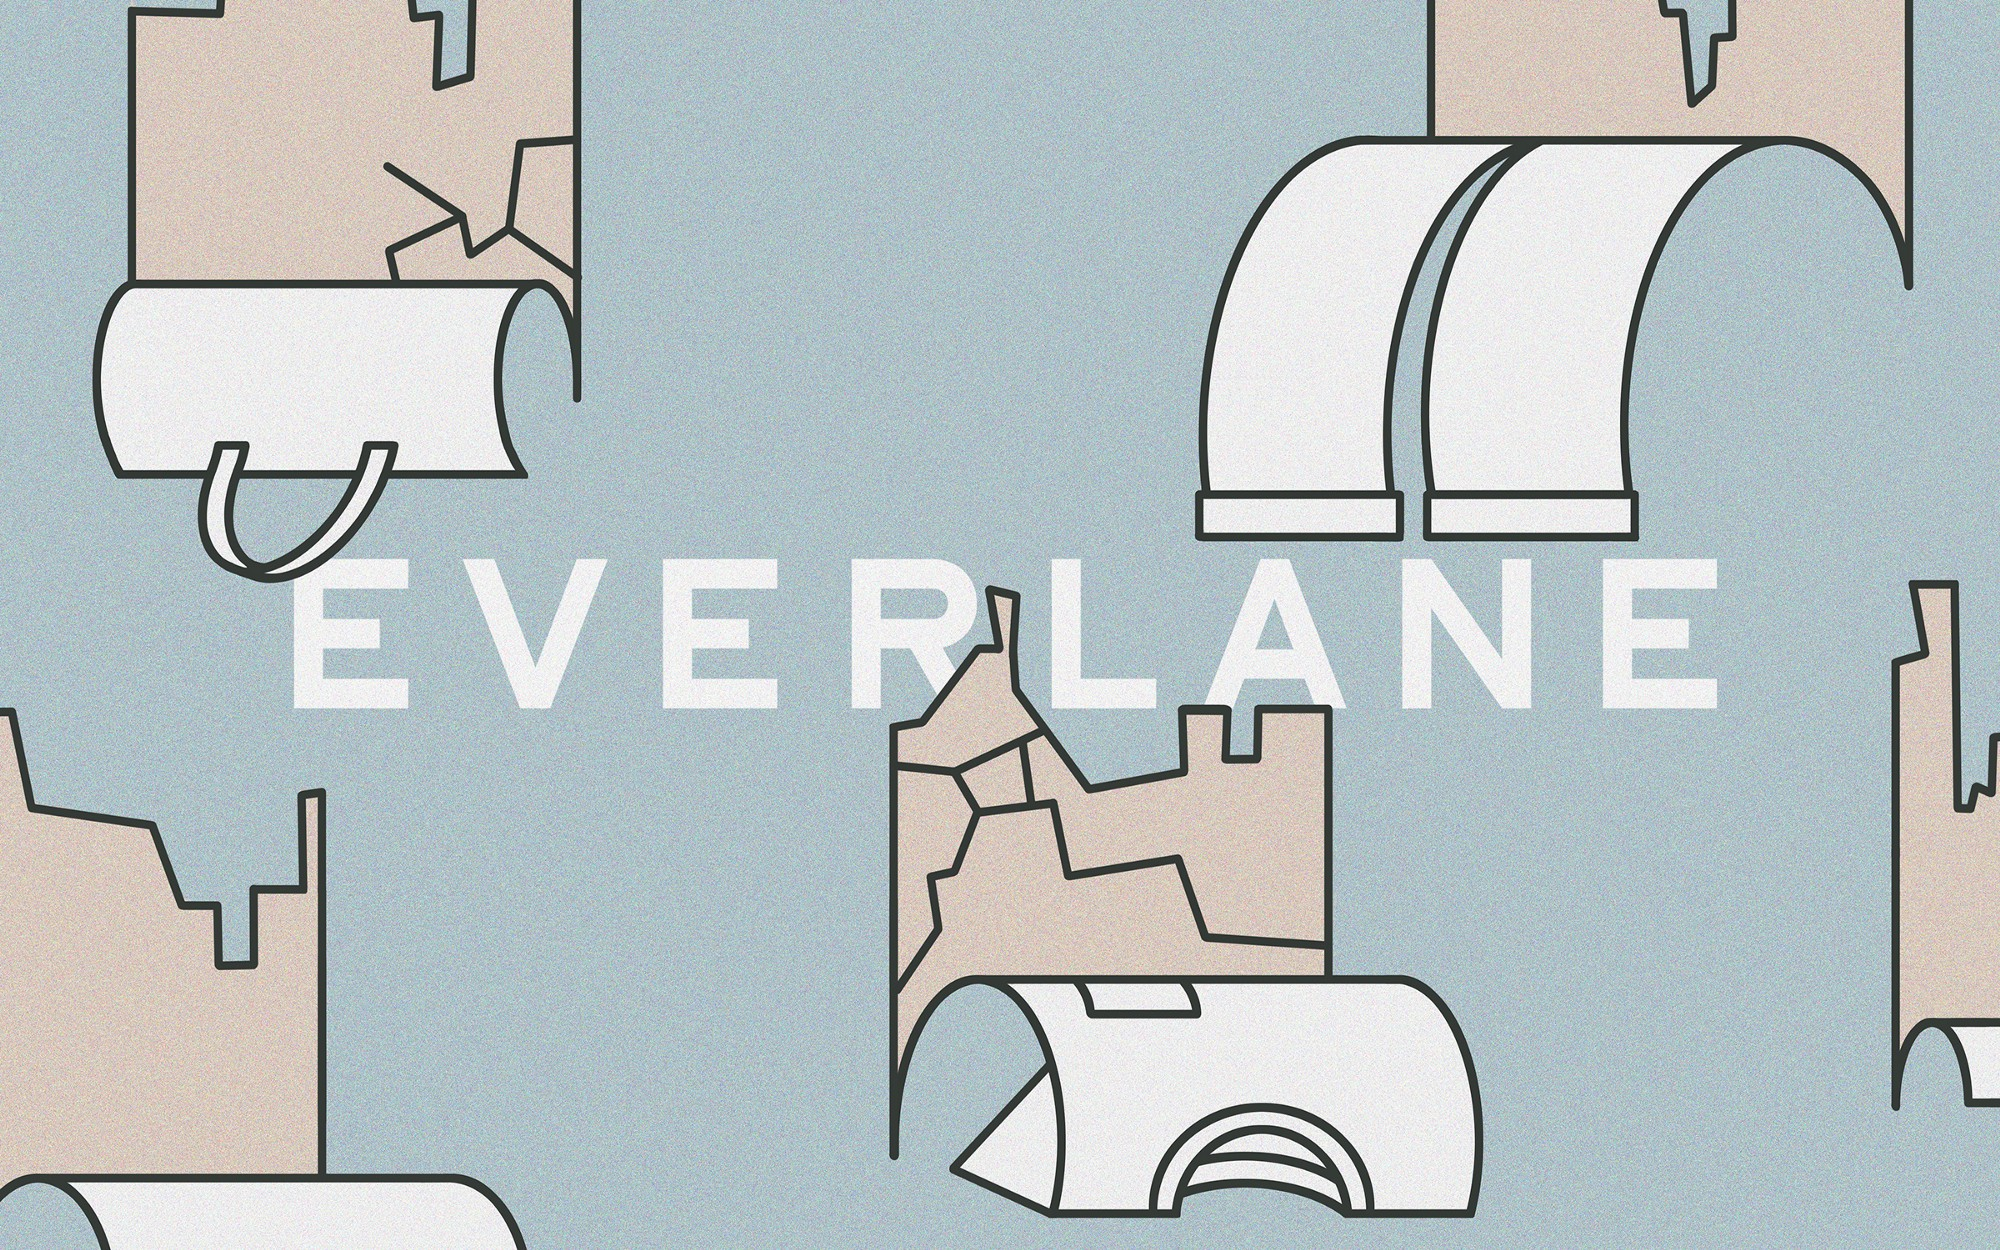 An illustration of the Everlane clothing brand logo on peeling and cracked wallpaper. peeling off of the wallpaper.